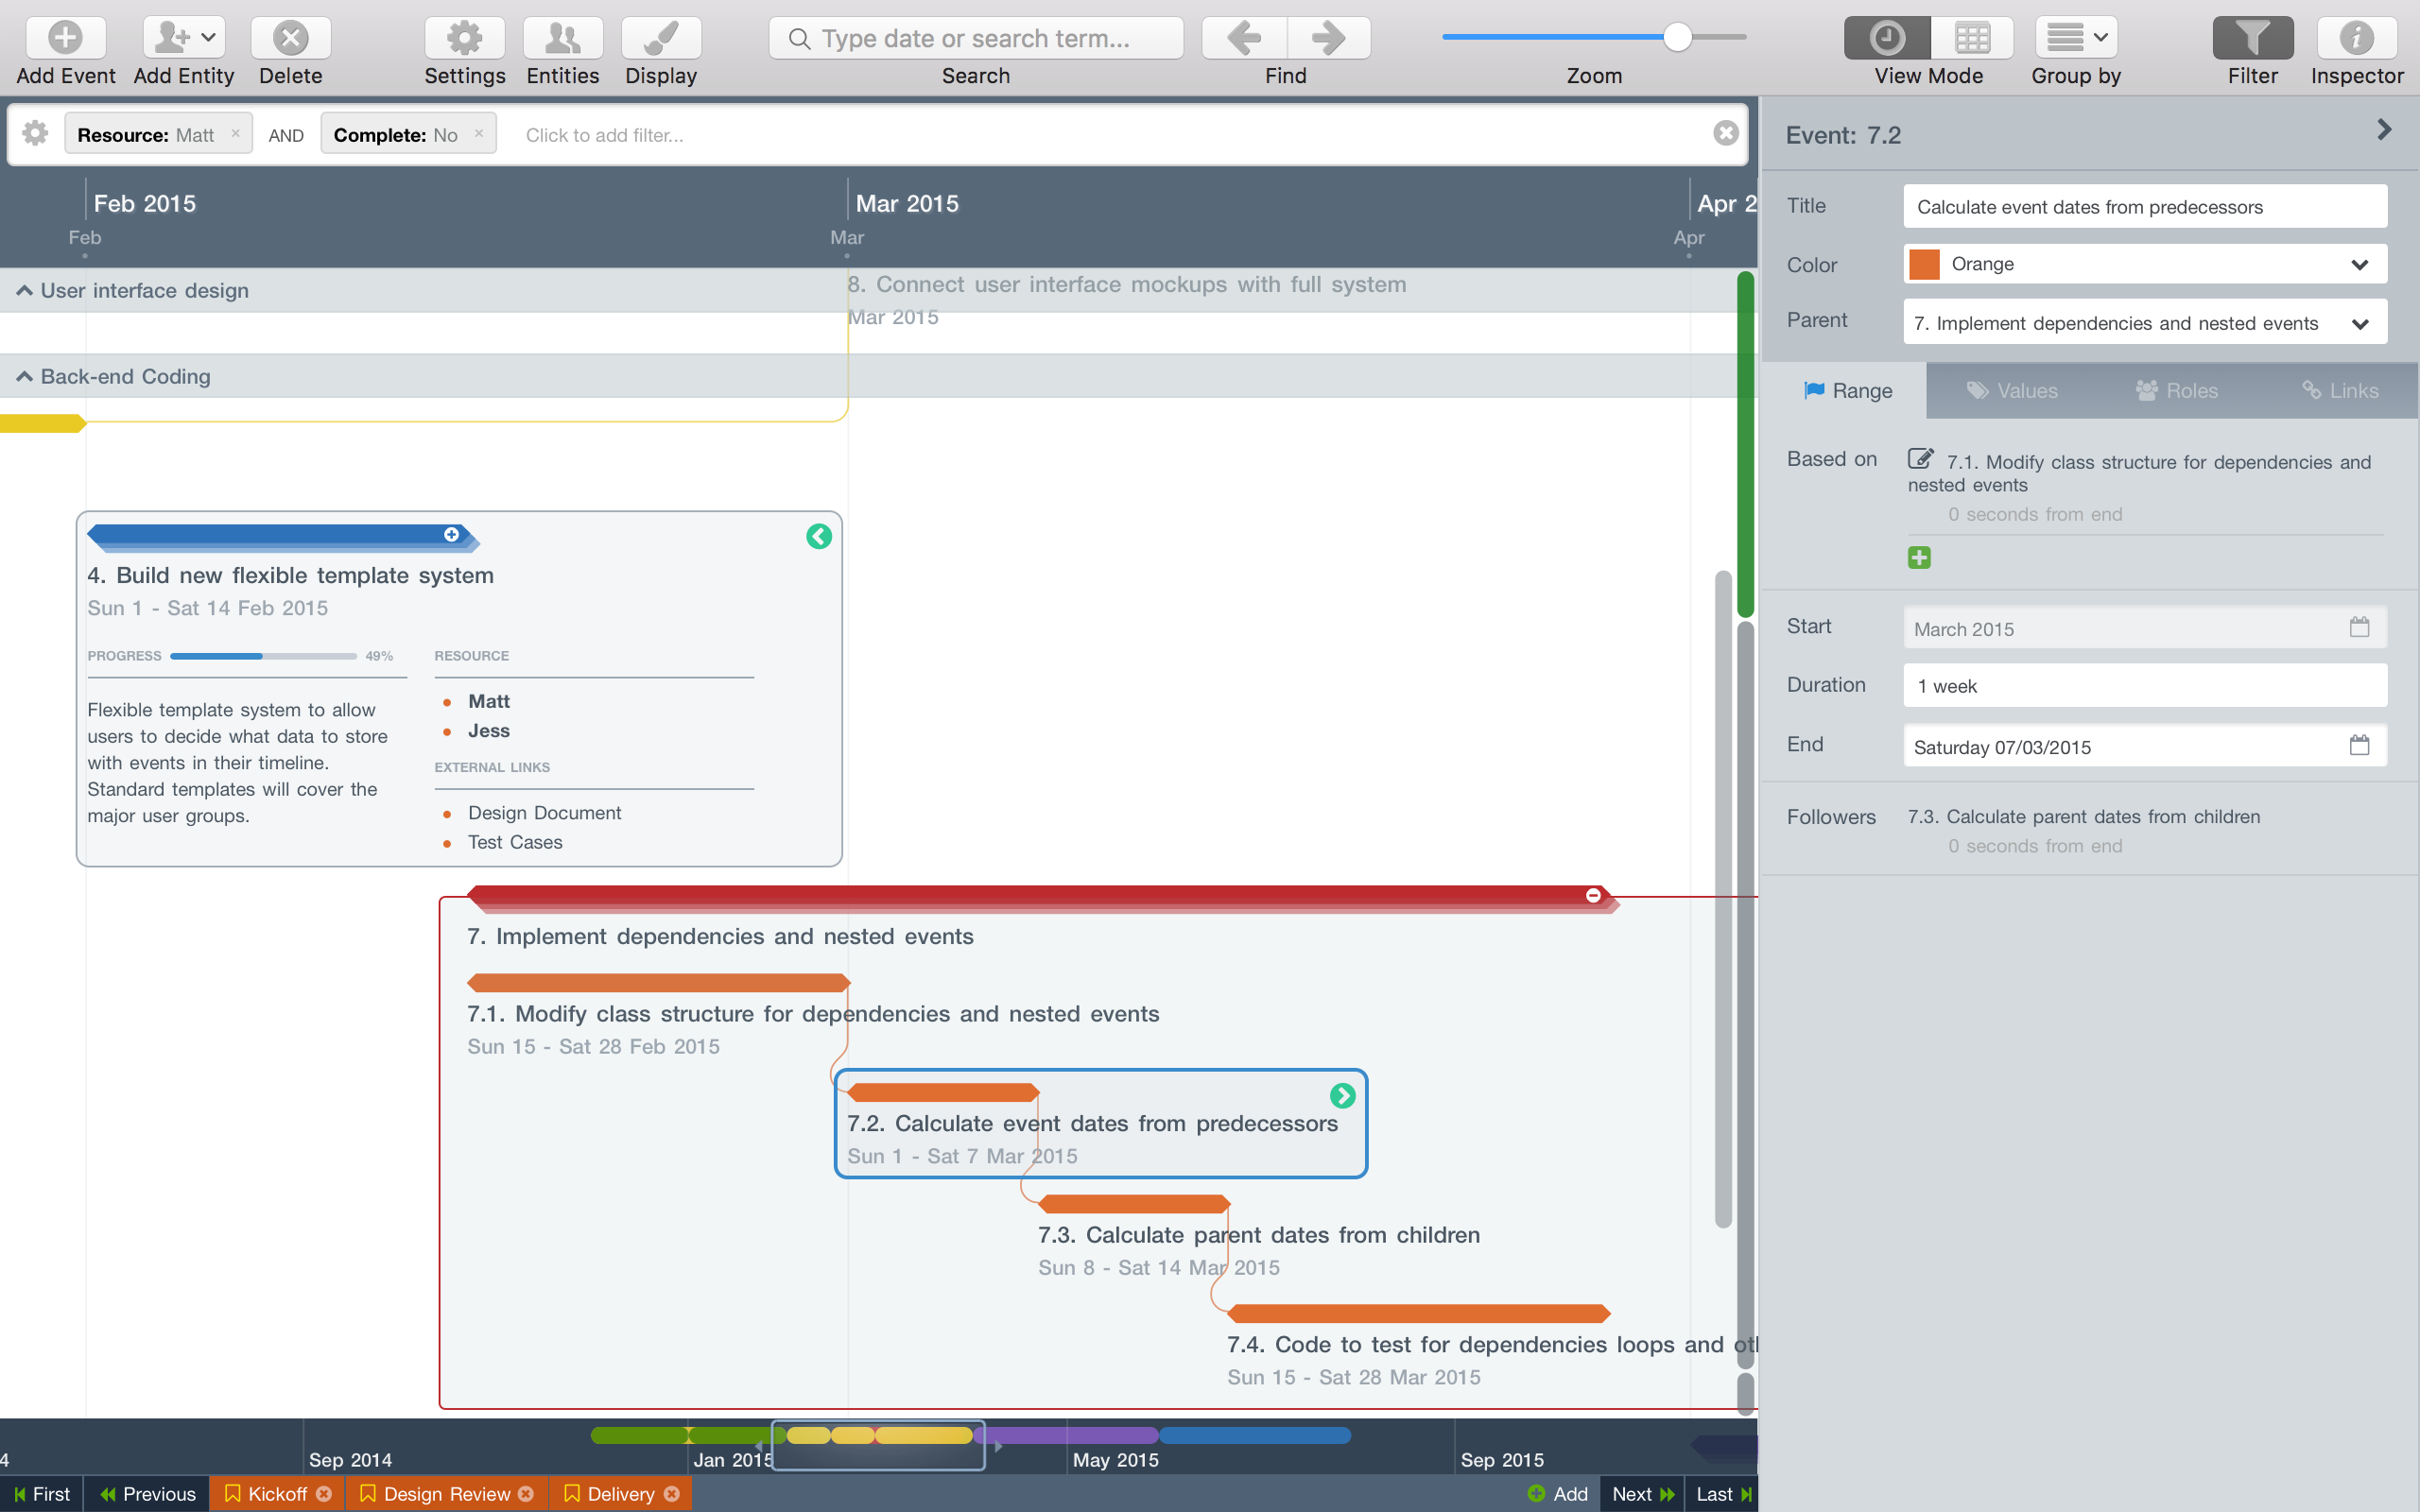 Layout your events (tasks) on a visually appealing timeline